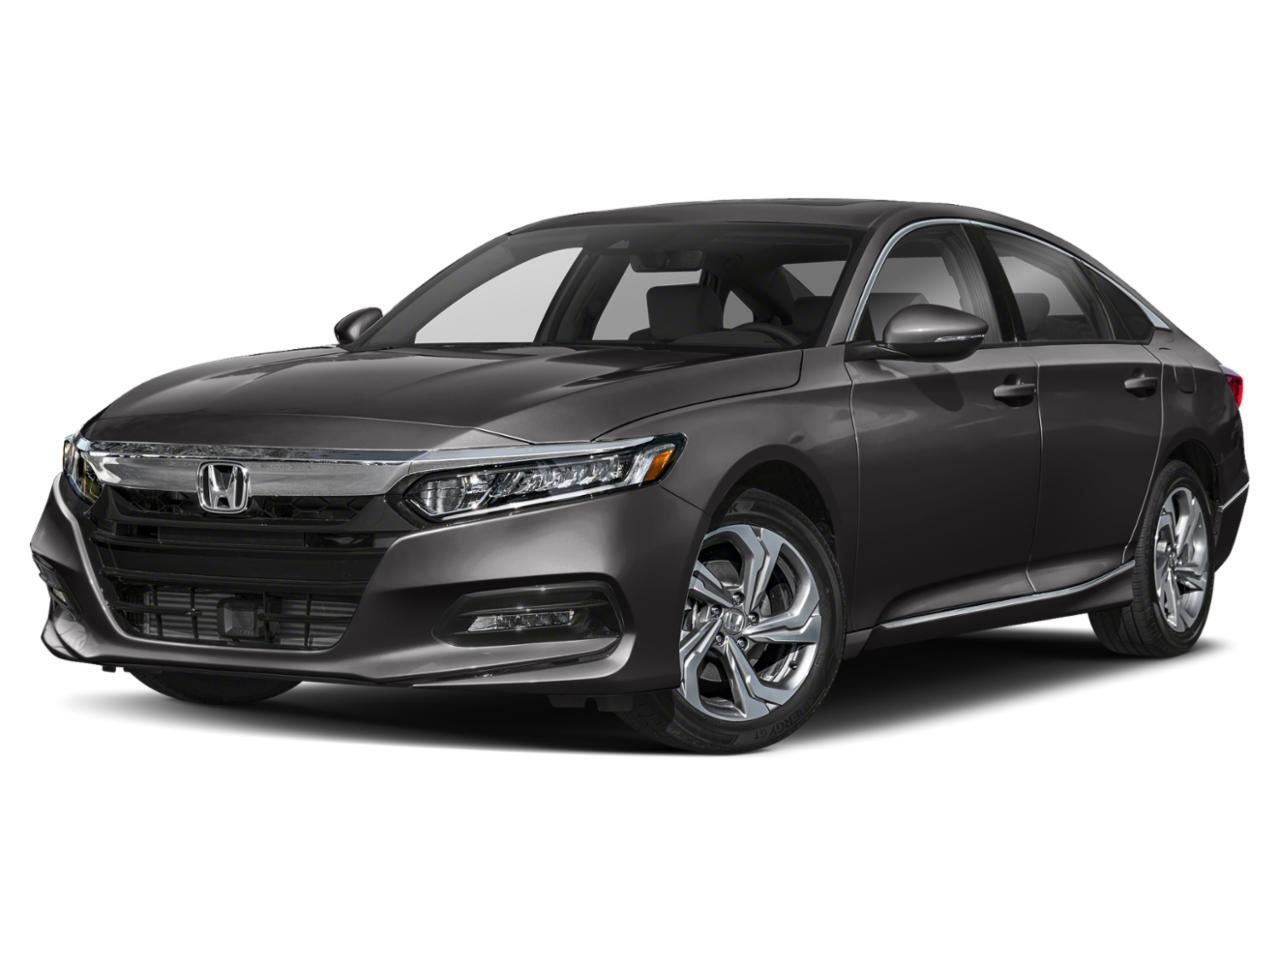 2020 Honda Accord Sedan For Sale at Classic Honda - 1HGCV1F57LA802083